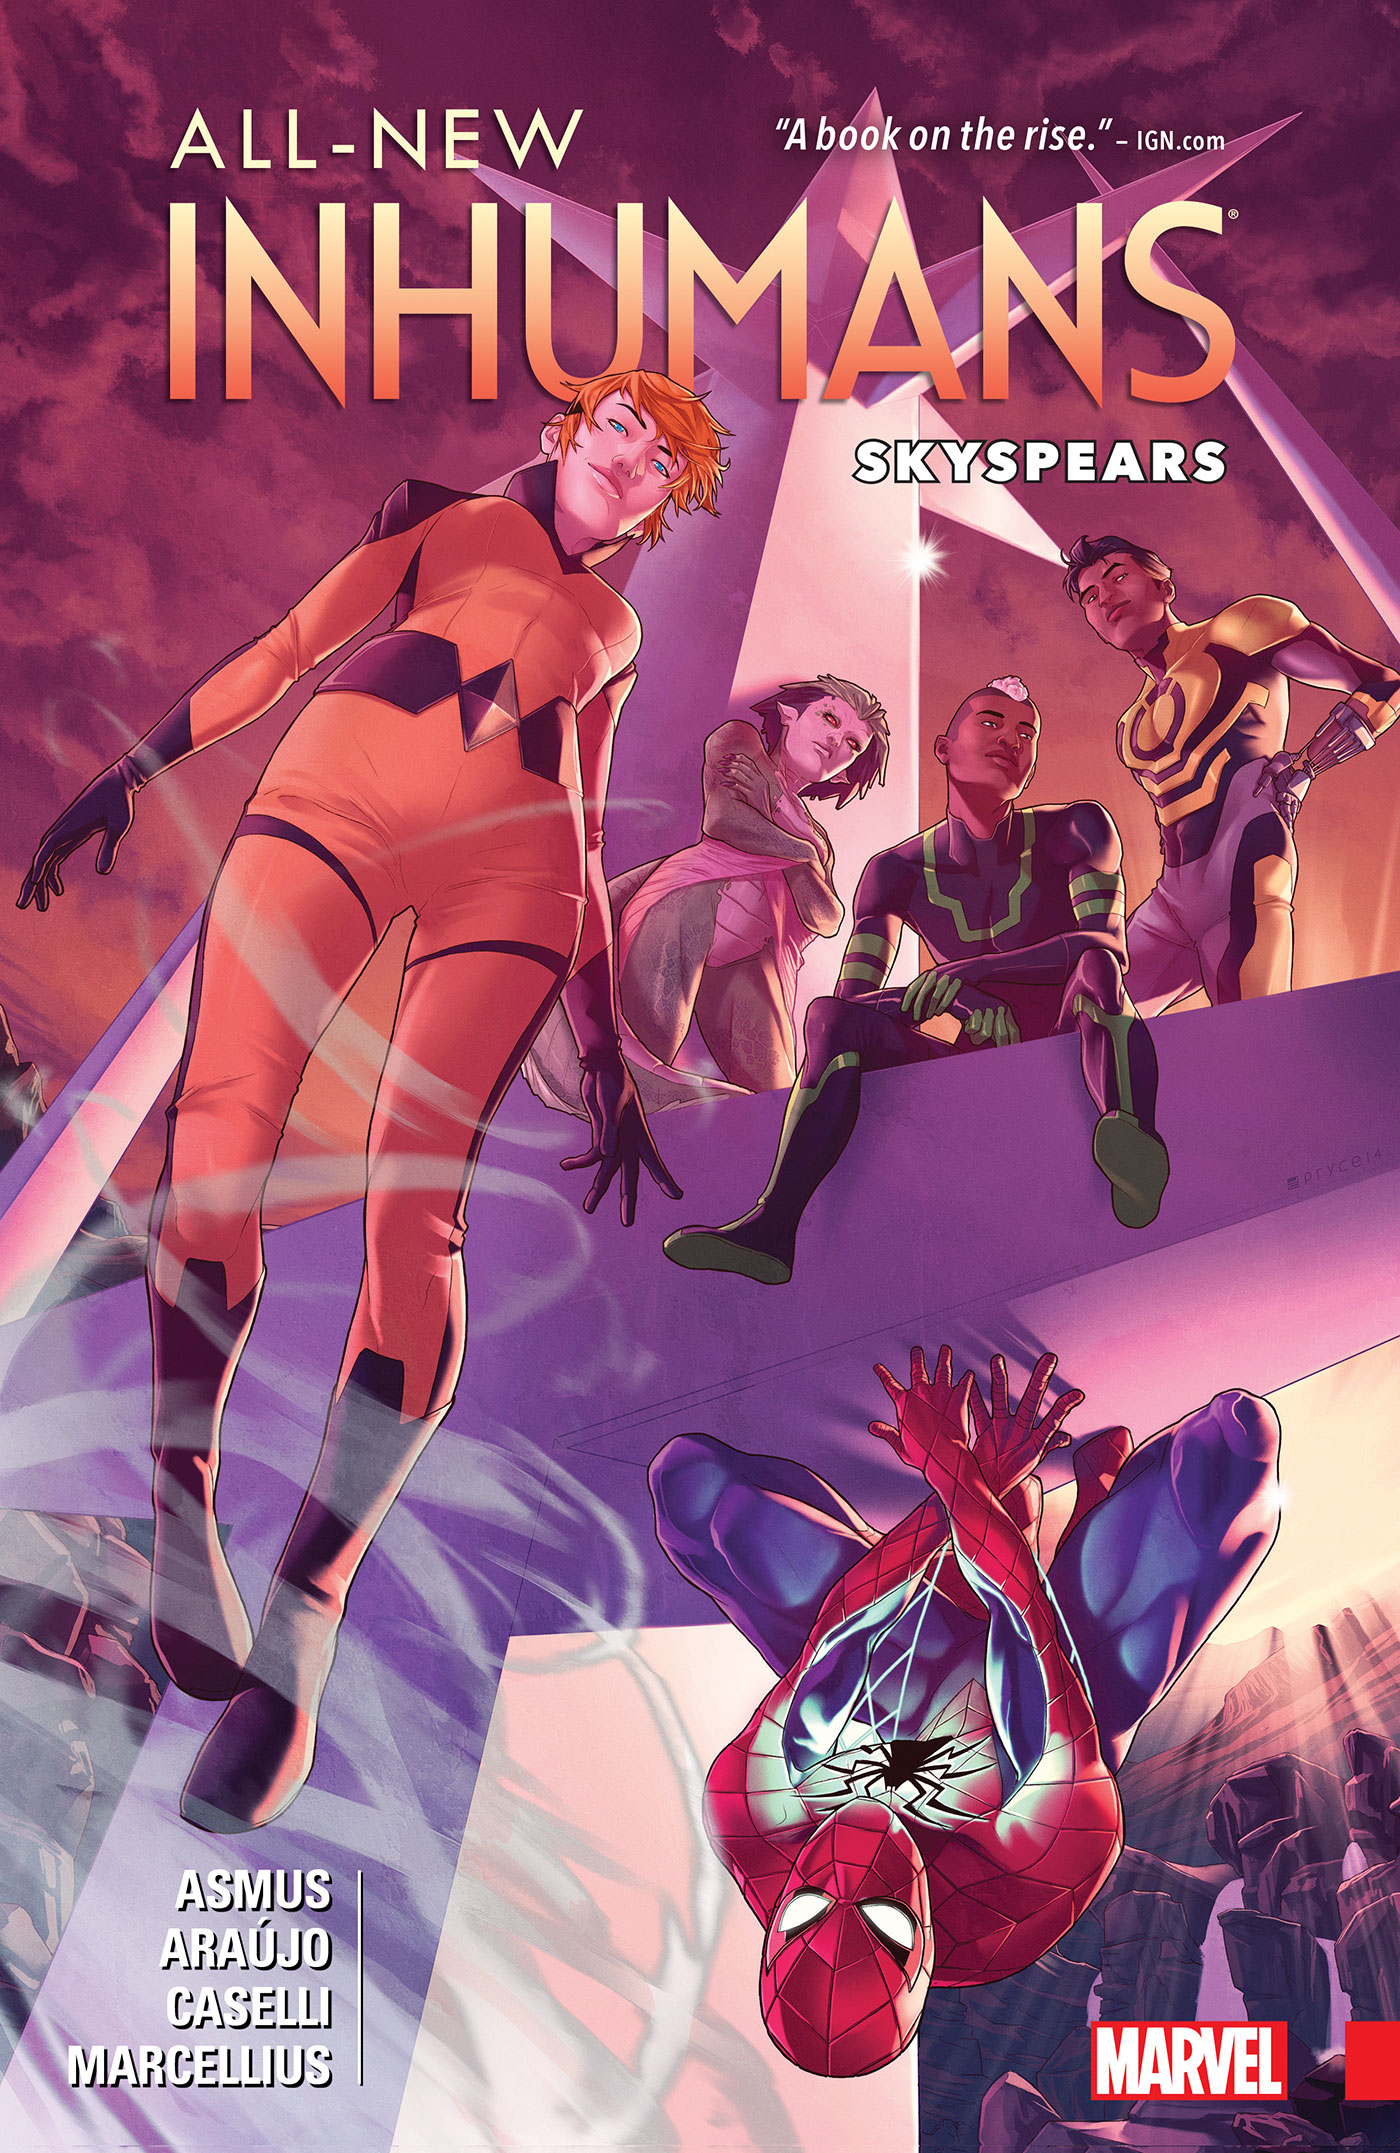 All-New Inhumans Vol. 2: Skyspears [electronic resource]